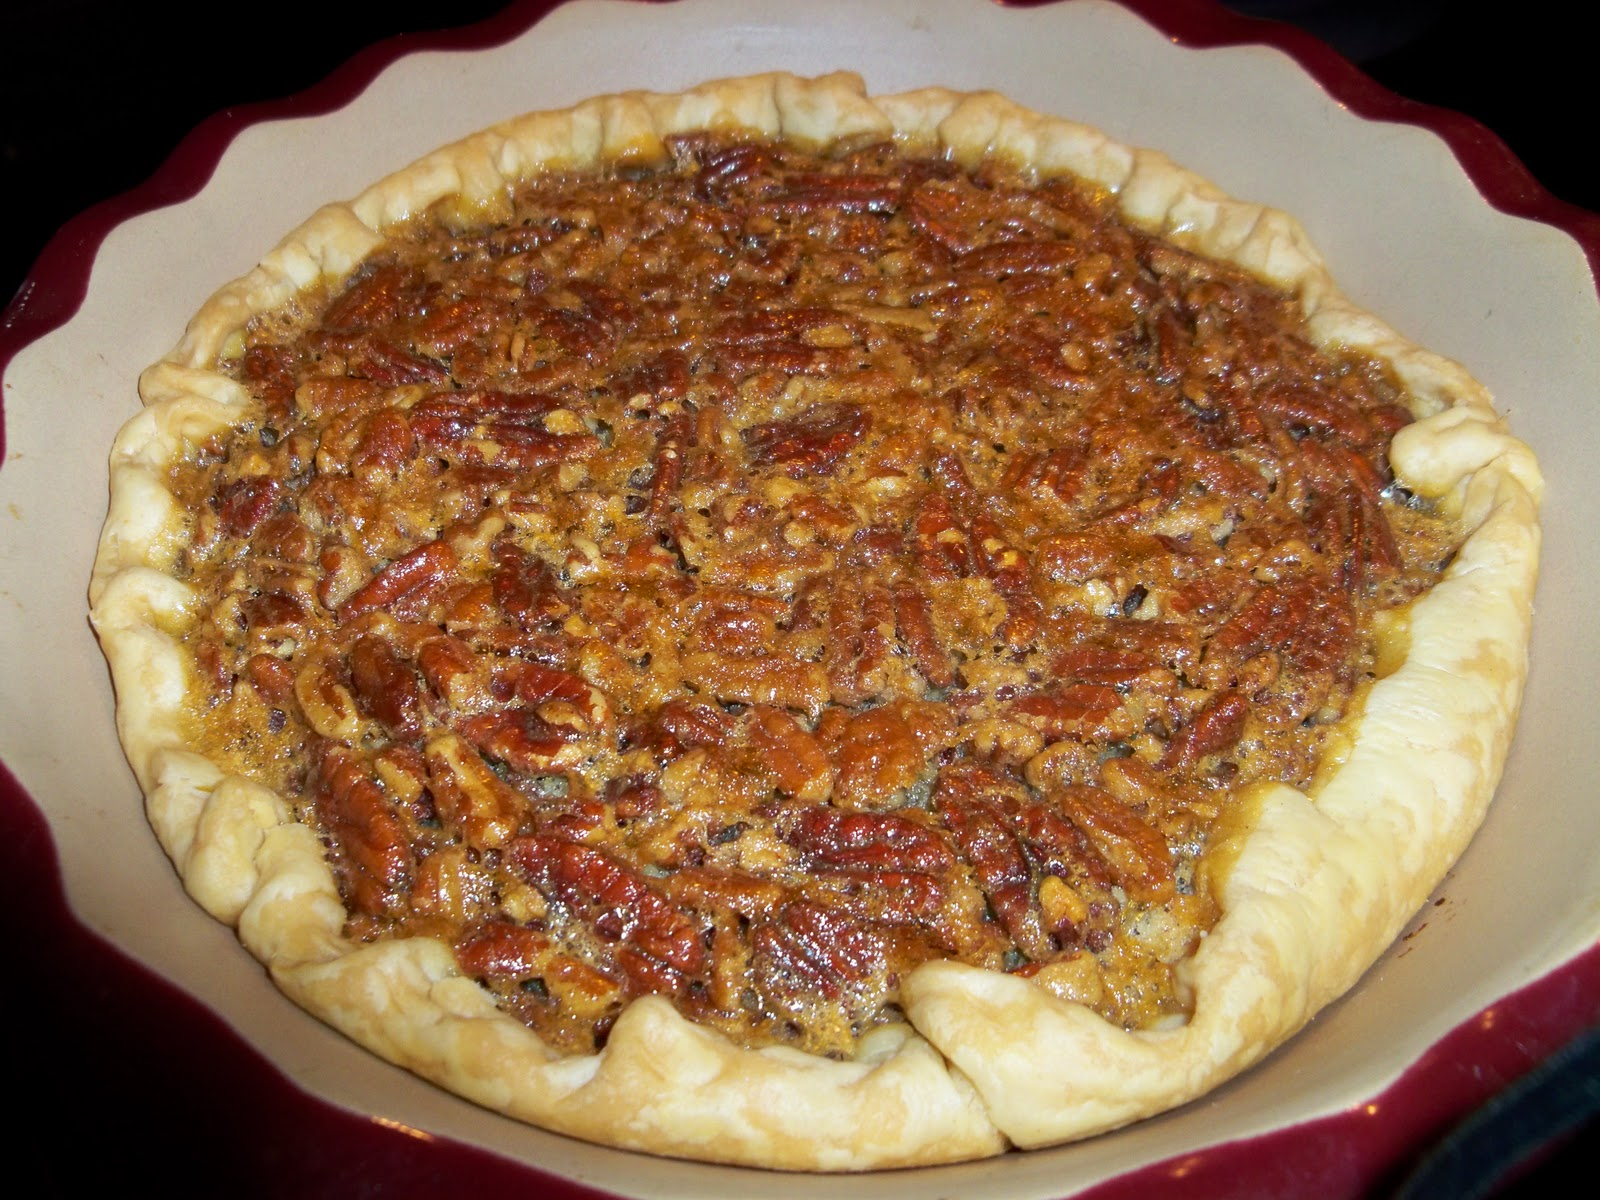 ... Recipes: Lisa's Southern Pecan Pie - from The Lady & Sons Cookbook